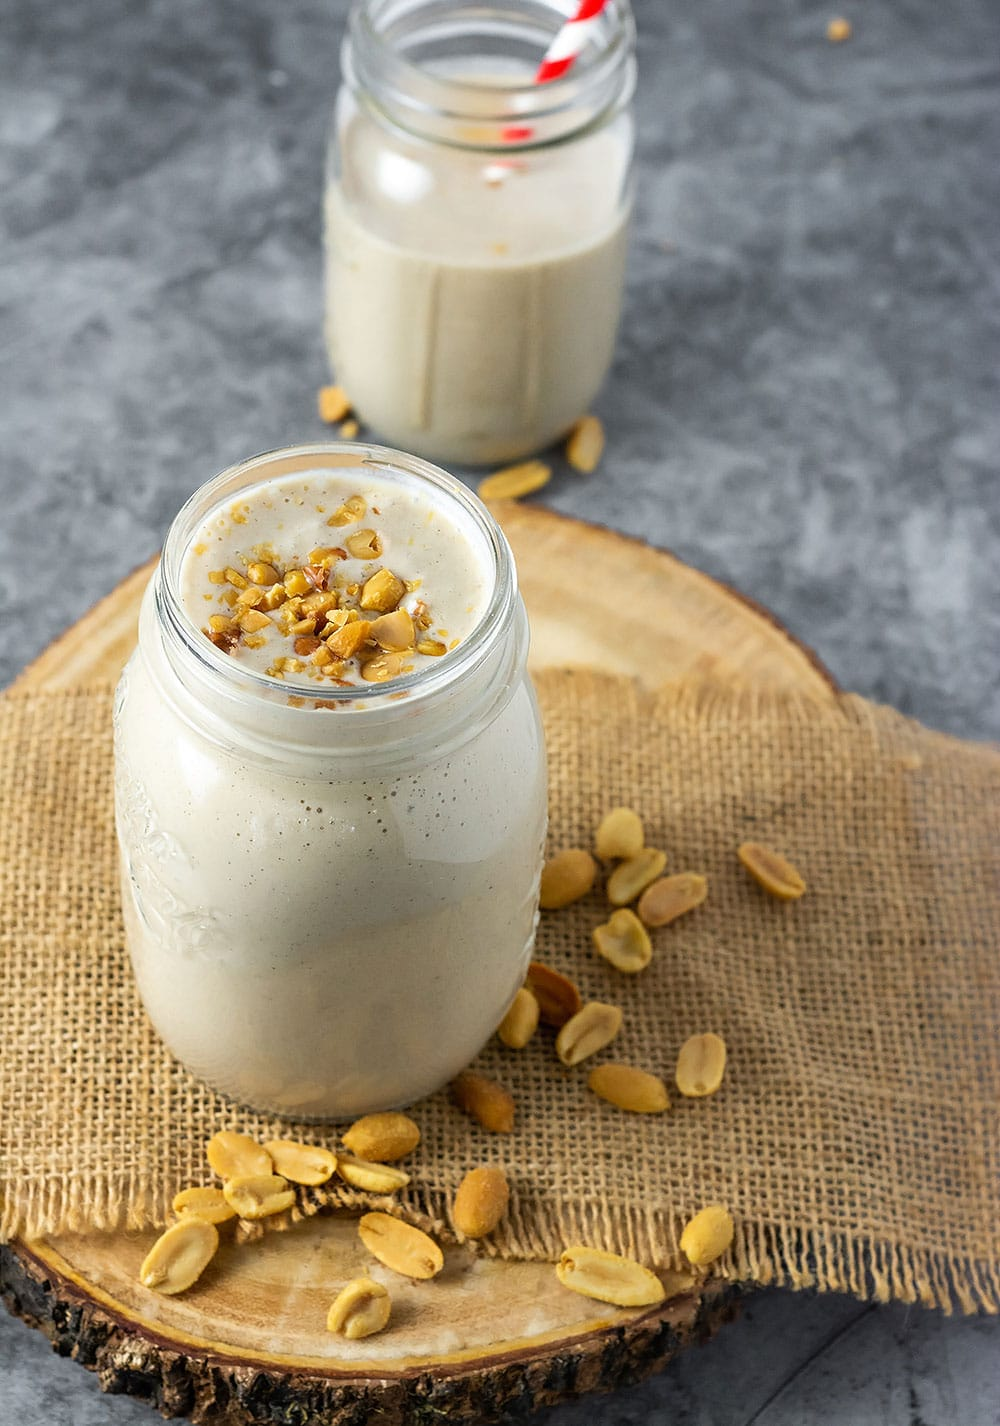 Peanut punch in a glass jar garnished on top with crushed peanuts on a burlap napkin